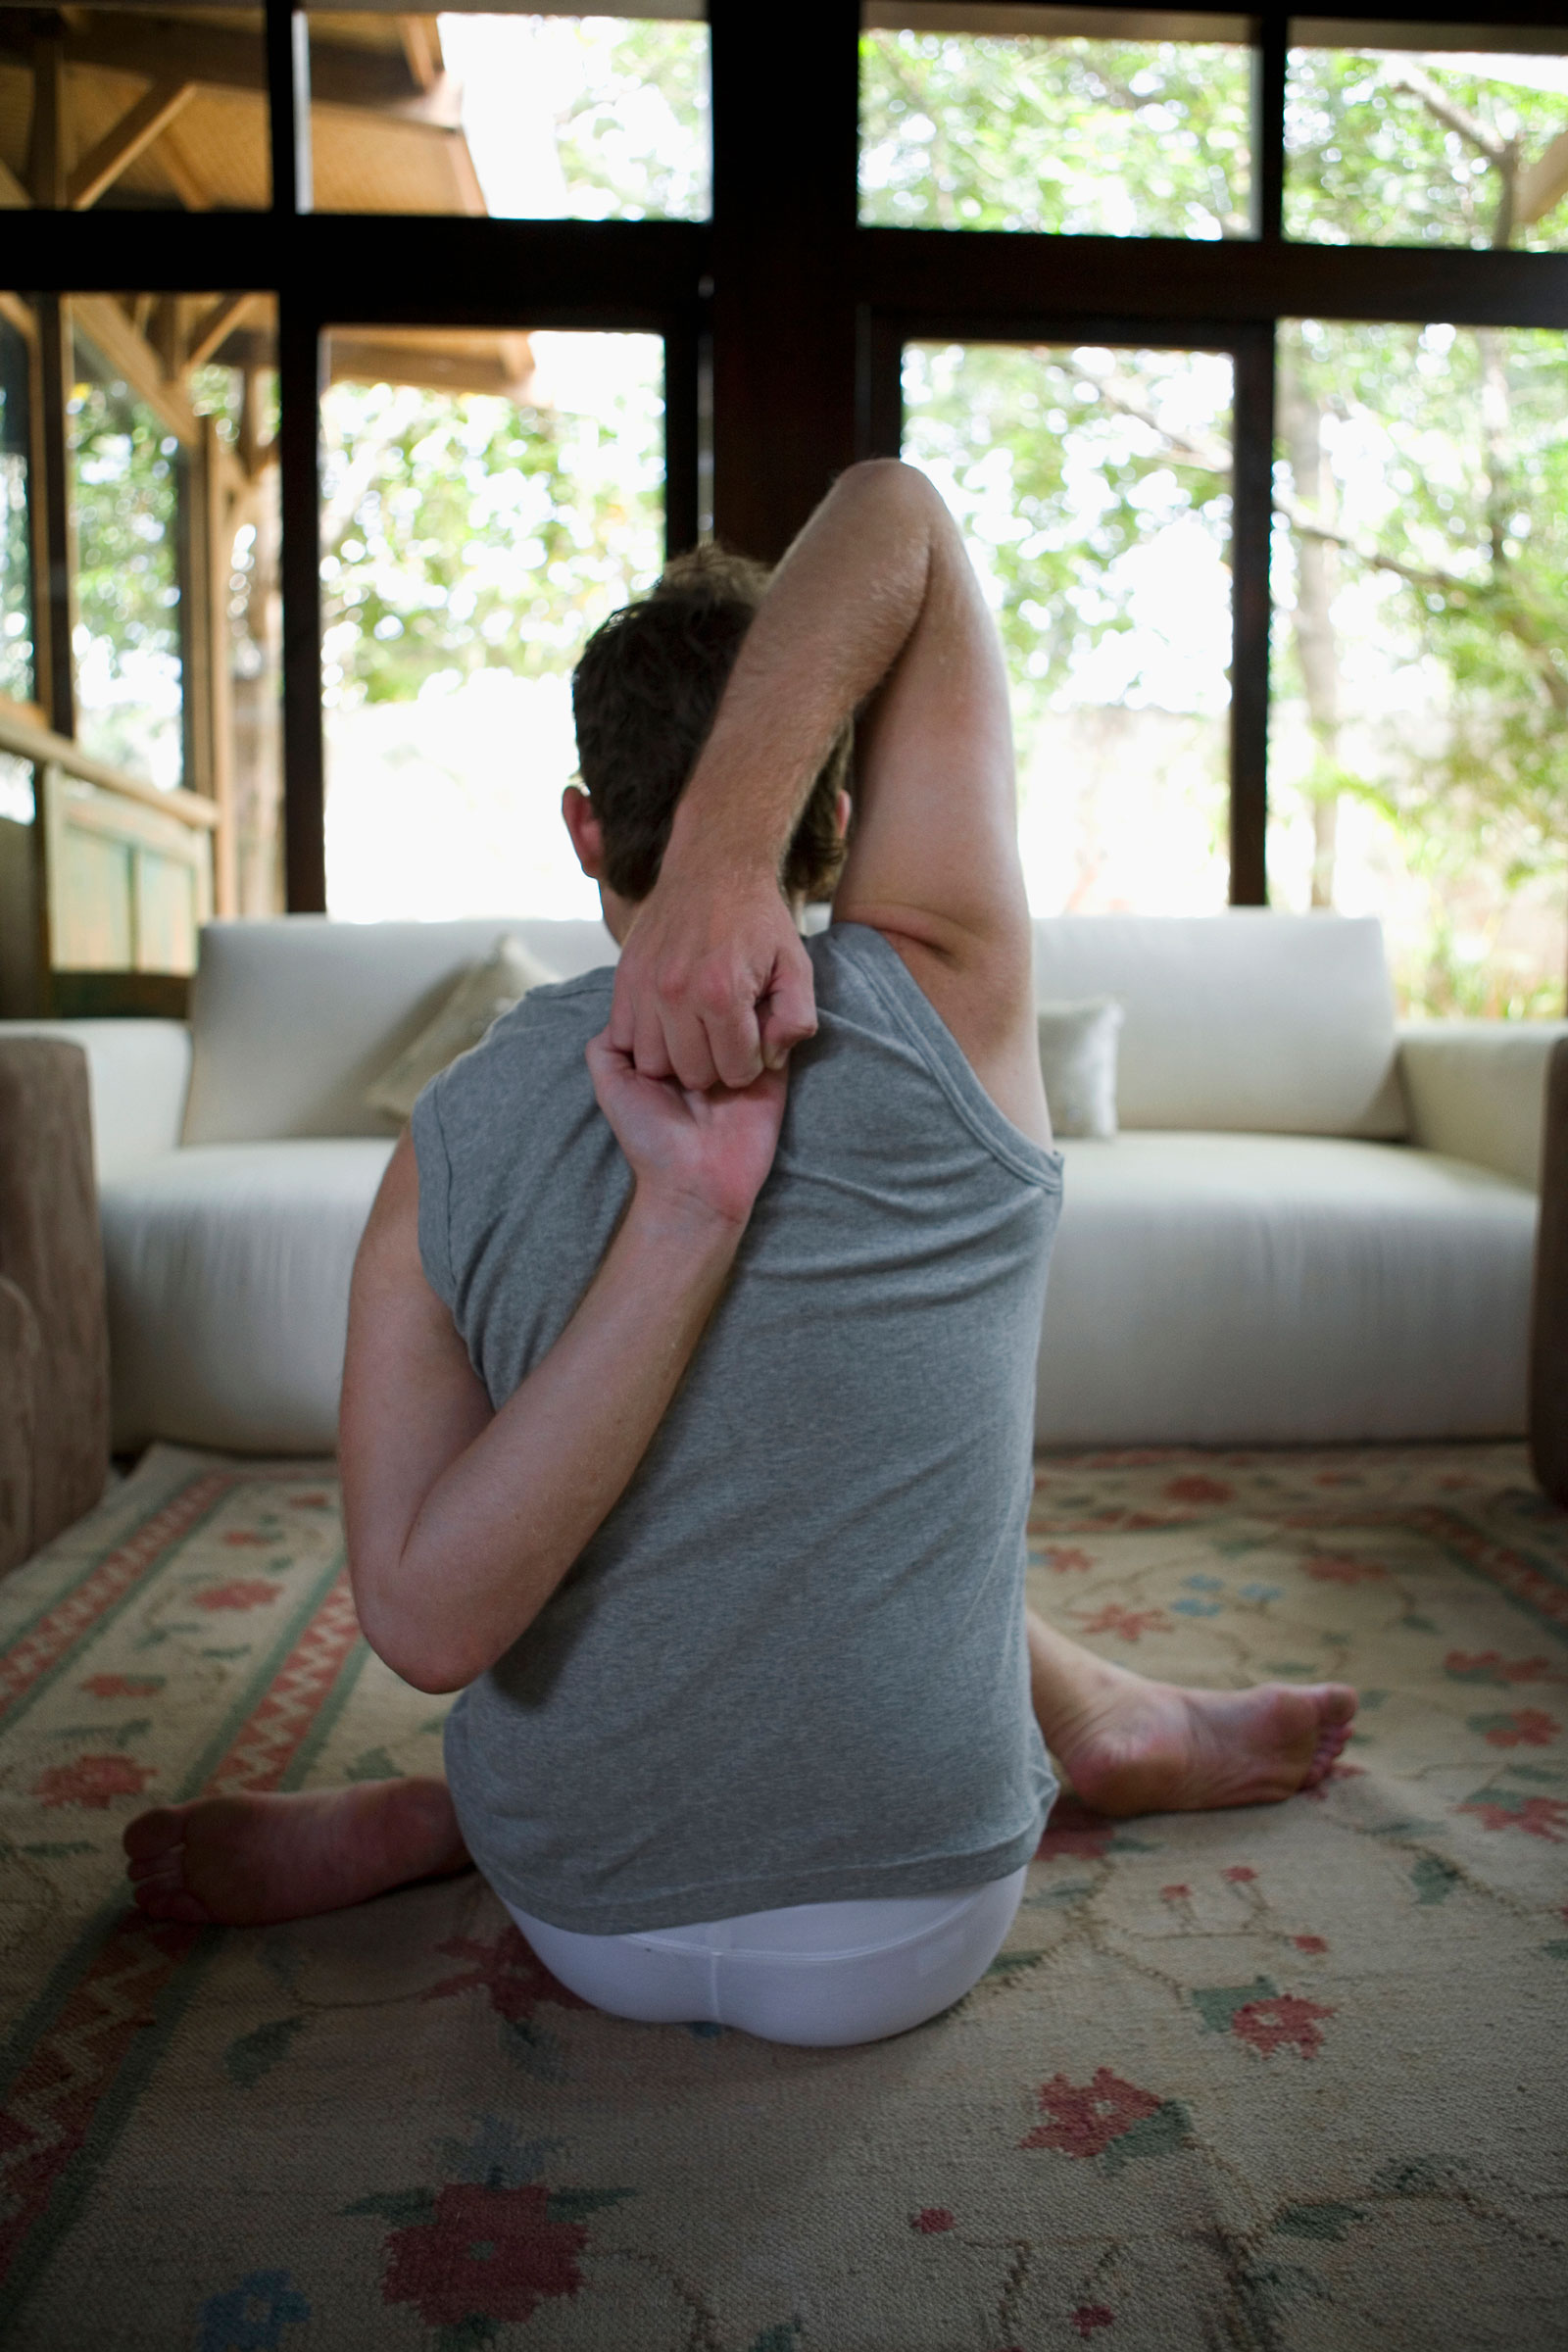 Man Yoga Pose at Home | Yoga For Men: Why More Guys Should Do Yoga Often